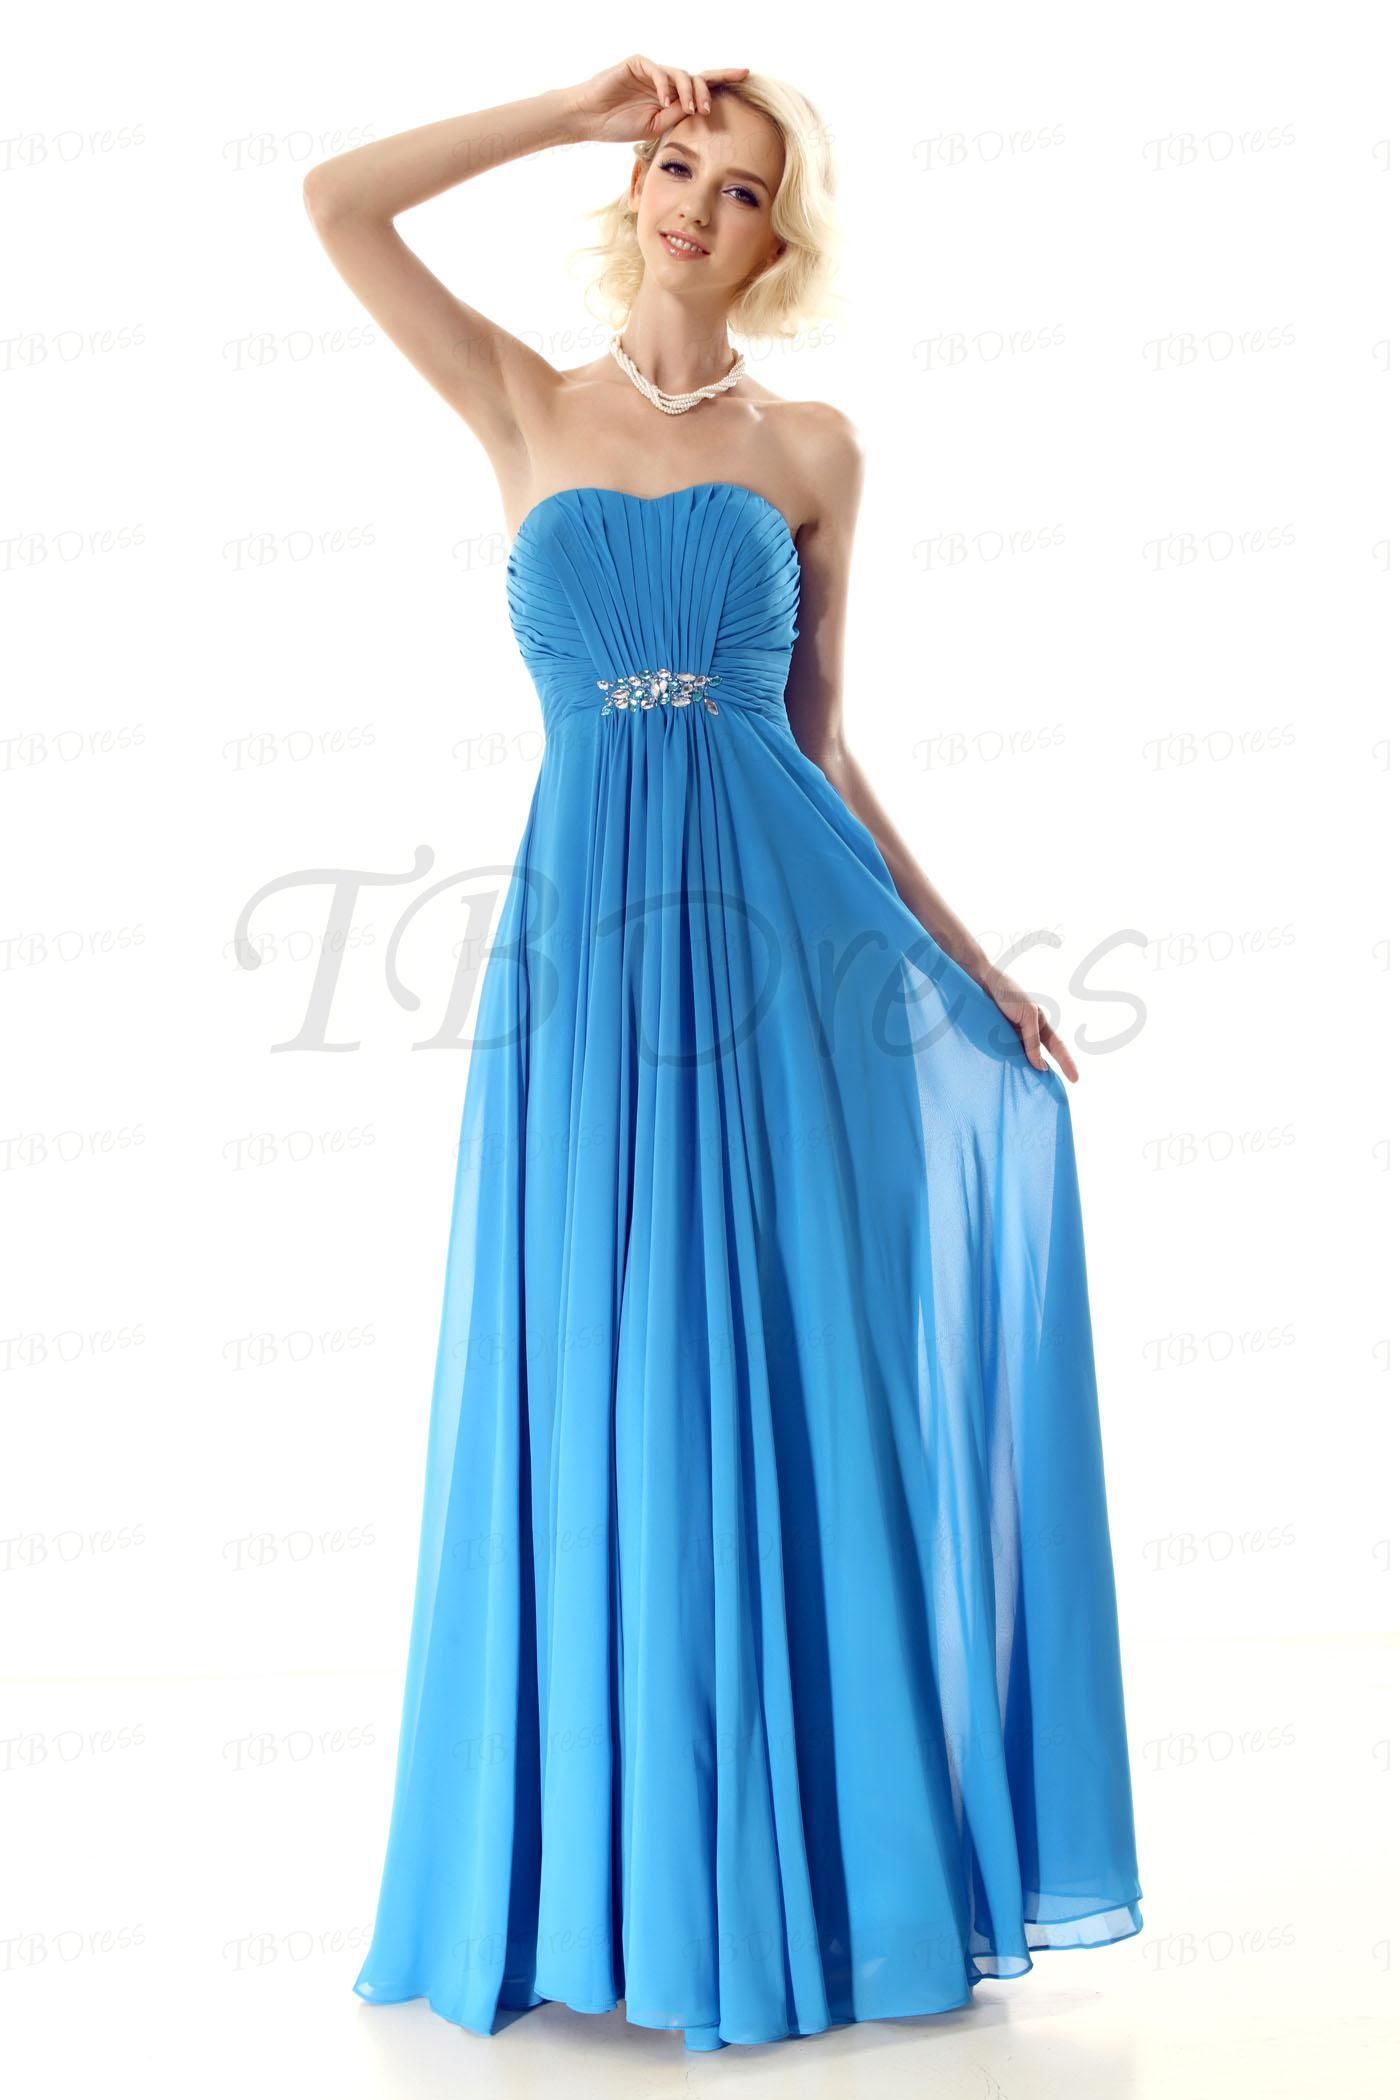 Long Formal Dresses Under 50 - Qi Dress